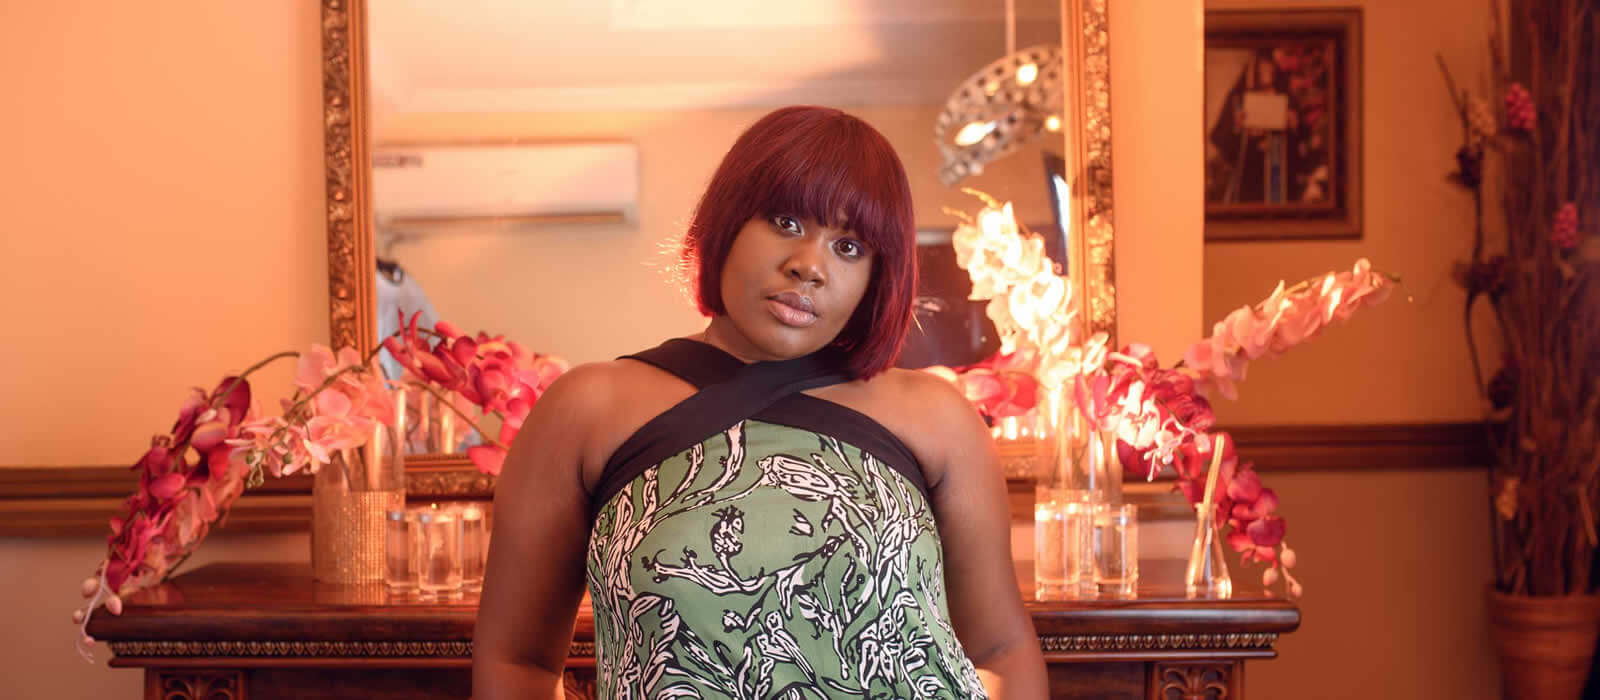 Africana Entrepreneur - NOT ONLY THE RICH CAN AFFORD EVENT PLANNING SERVICES – CHISOM OKAFOR